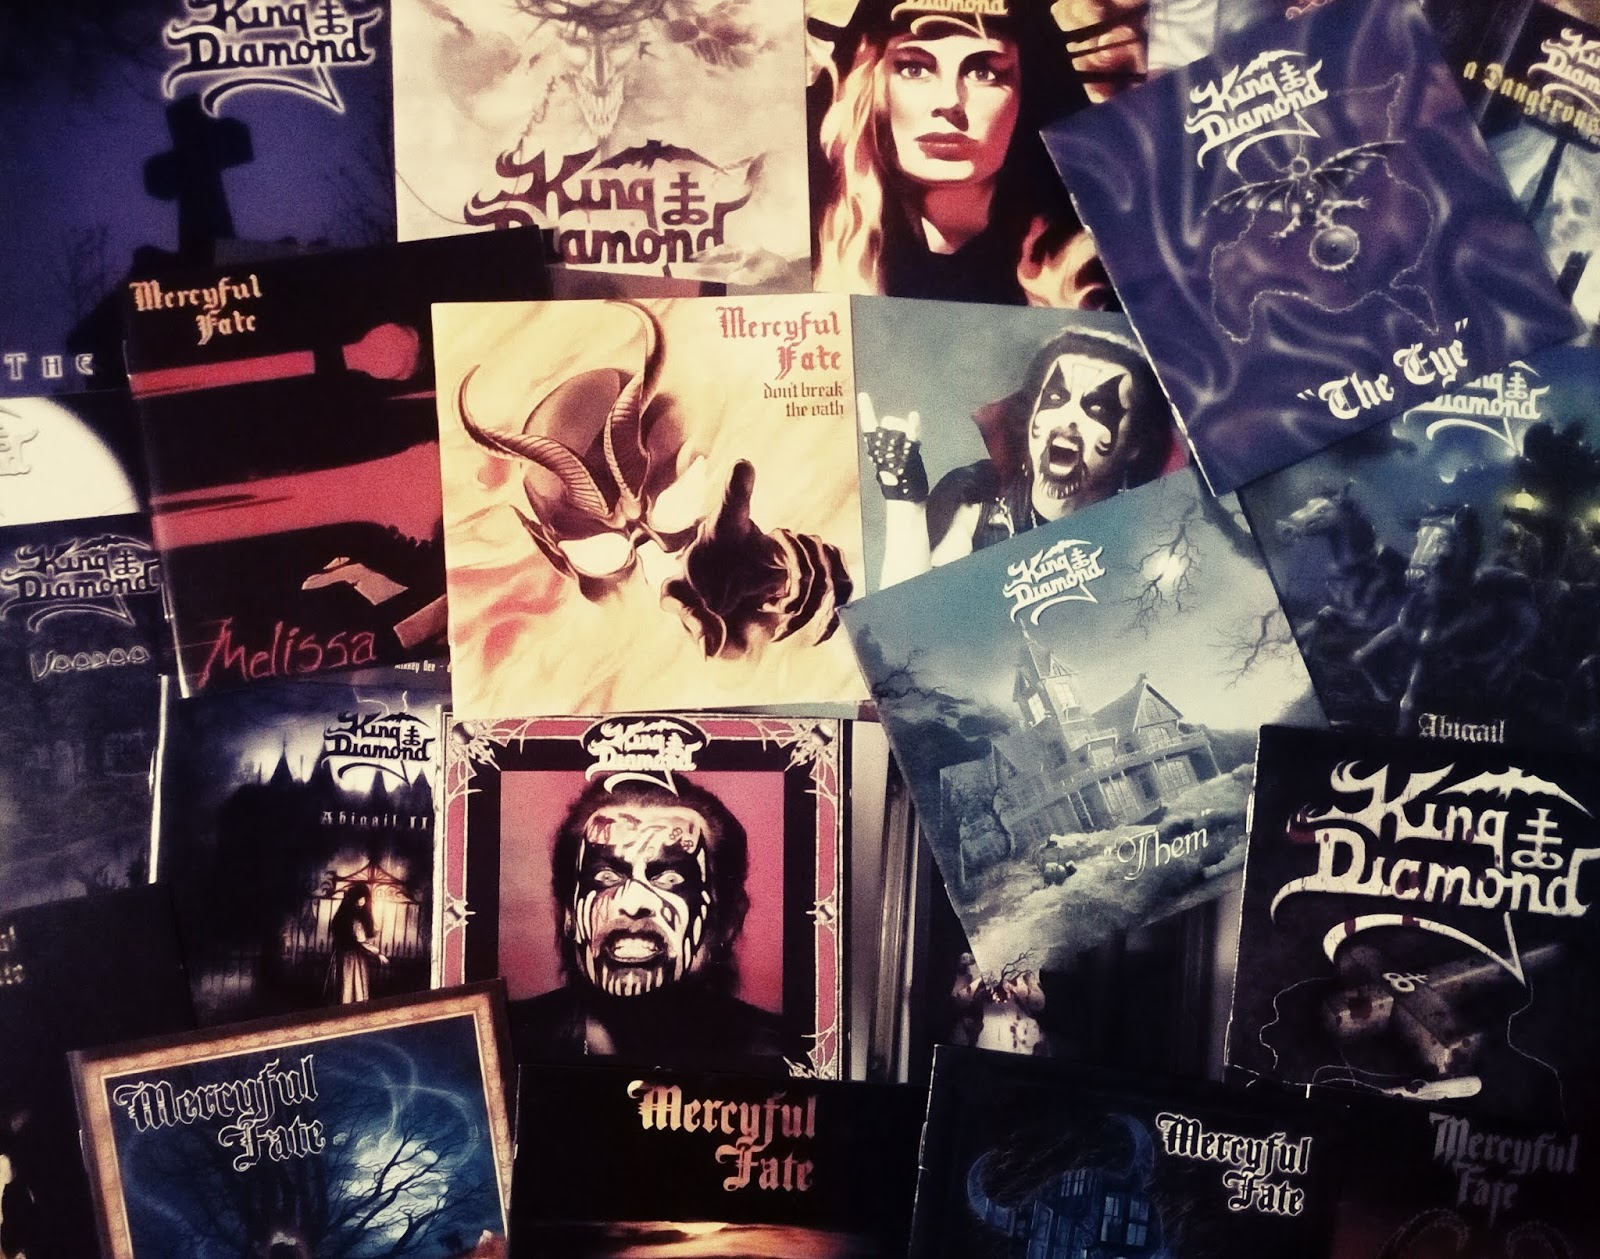 The Oath can't be broken: The legacy of Mercyful Fate and King Diamond